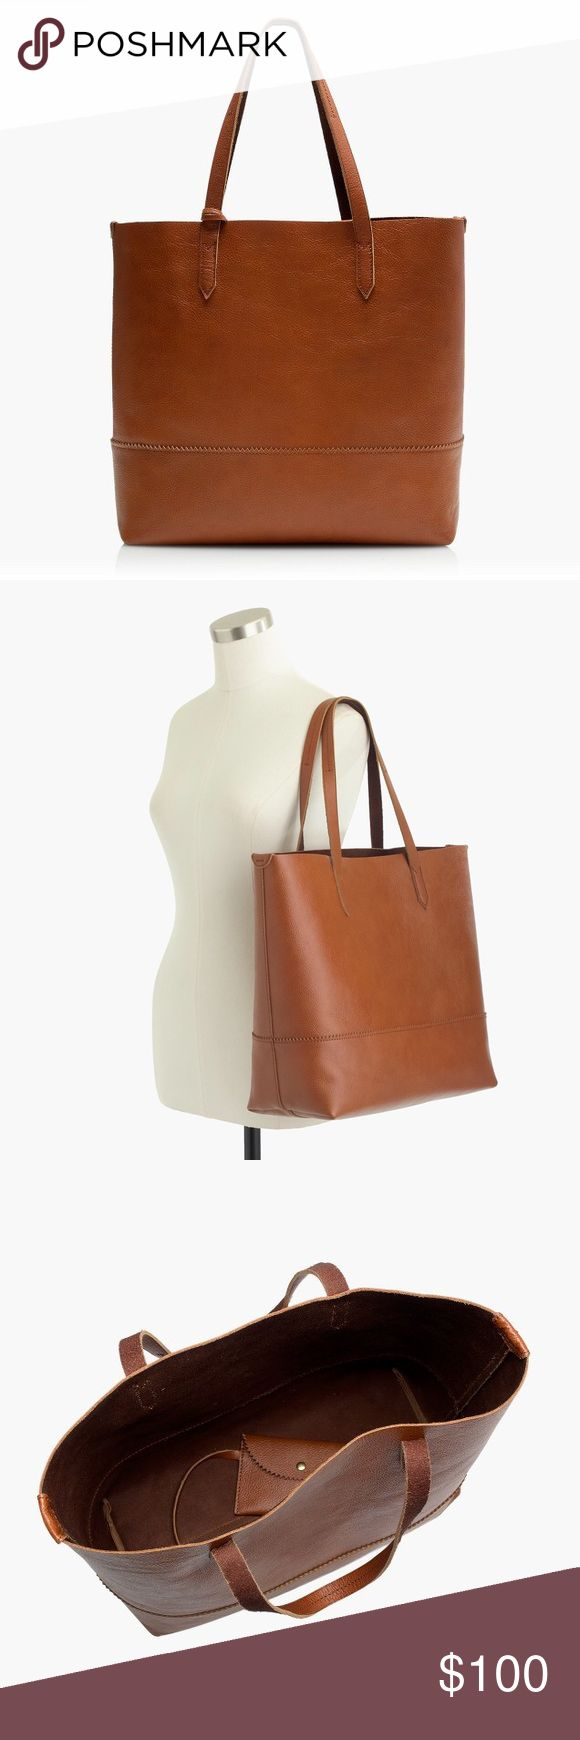 """🆕 J.Crew Leather Downing Tote in English Saddle Gorgeous soft leather tote from J.Crew! Open interior that is perfect for a carry on bag or to hold all your essentials on the way to work! Big enough to carry a 13"""" laptop. Unstructured style. Straps are long enough to carry over your shoulder. Stock photos from J.Crew shown. Tote for sale was purchased in store and has NEVER BEEN USED. Tote for sale does NOT have a monogram on it - the fourth picture is for scale. MORE PICTURES COMING SOON…"""